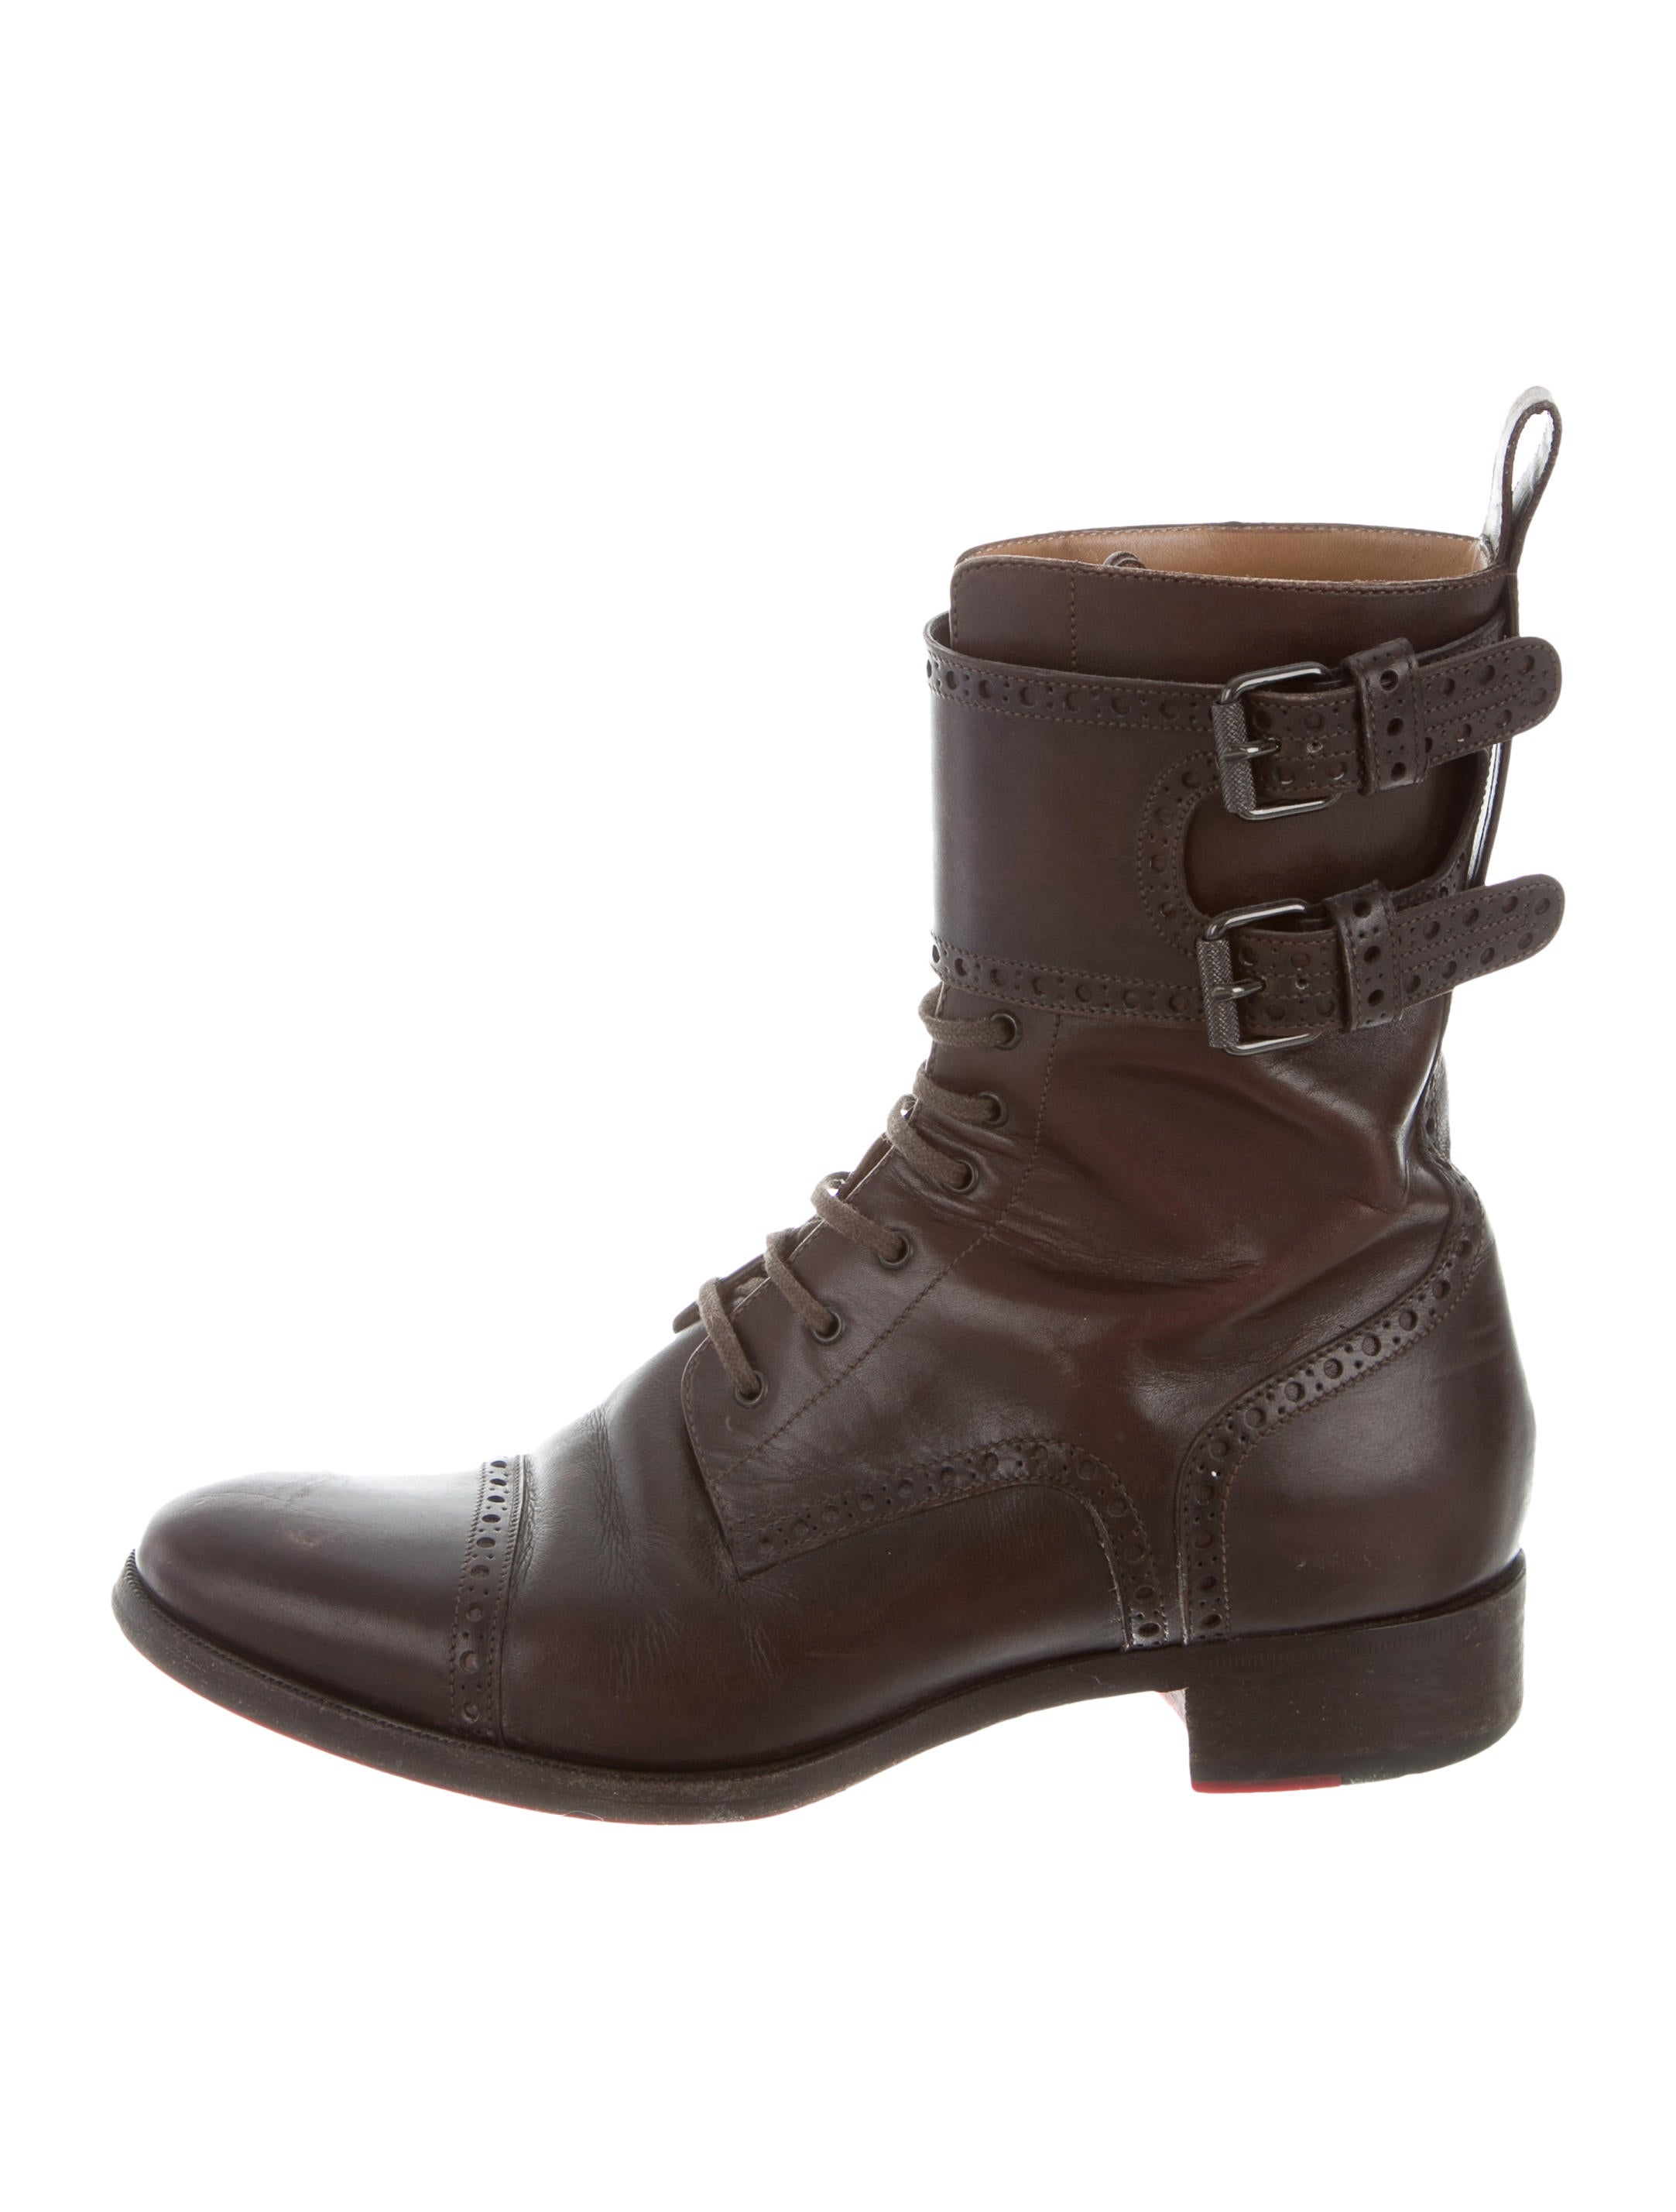 christian louboutin toerless leather boots shoes